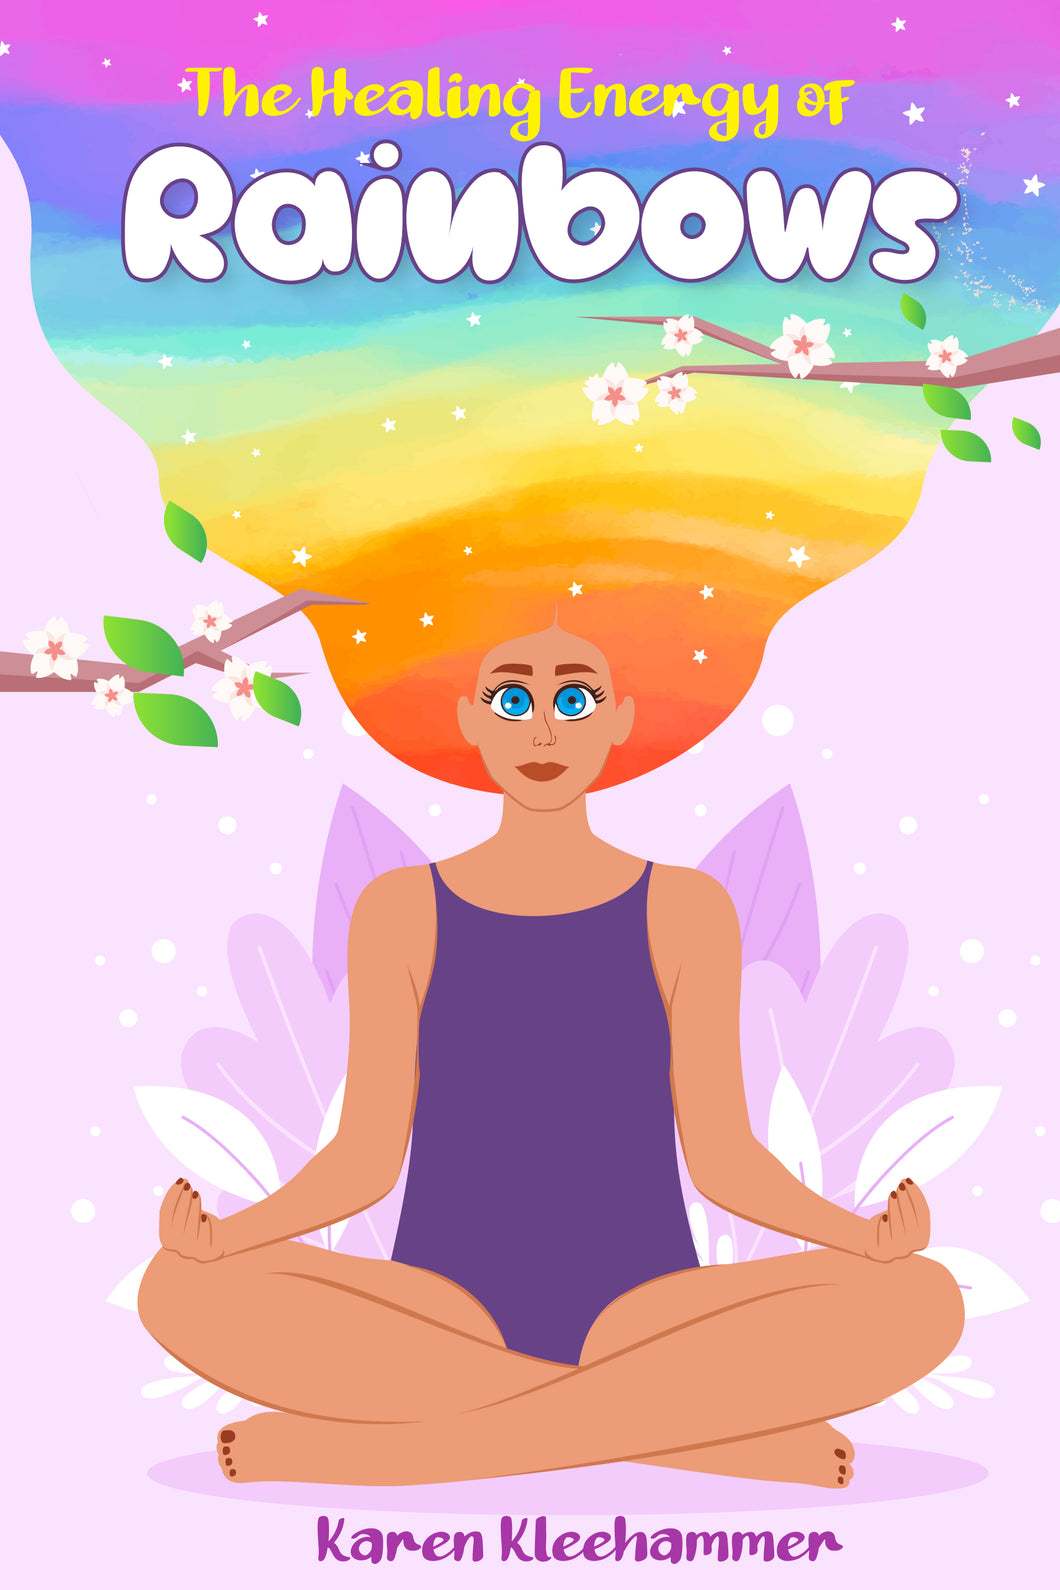 The Healing Energy of Rainbows